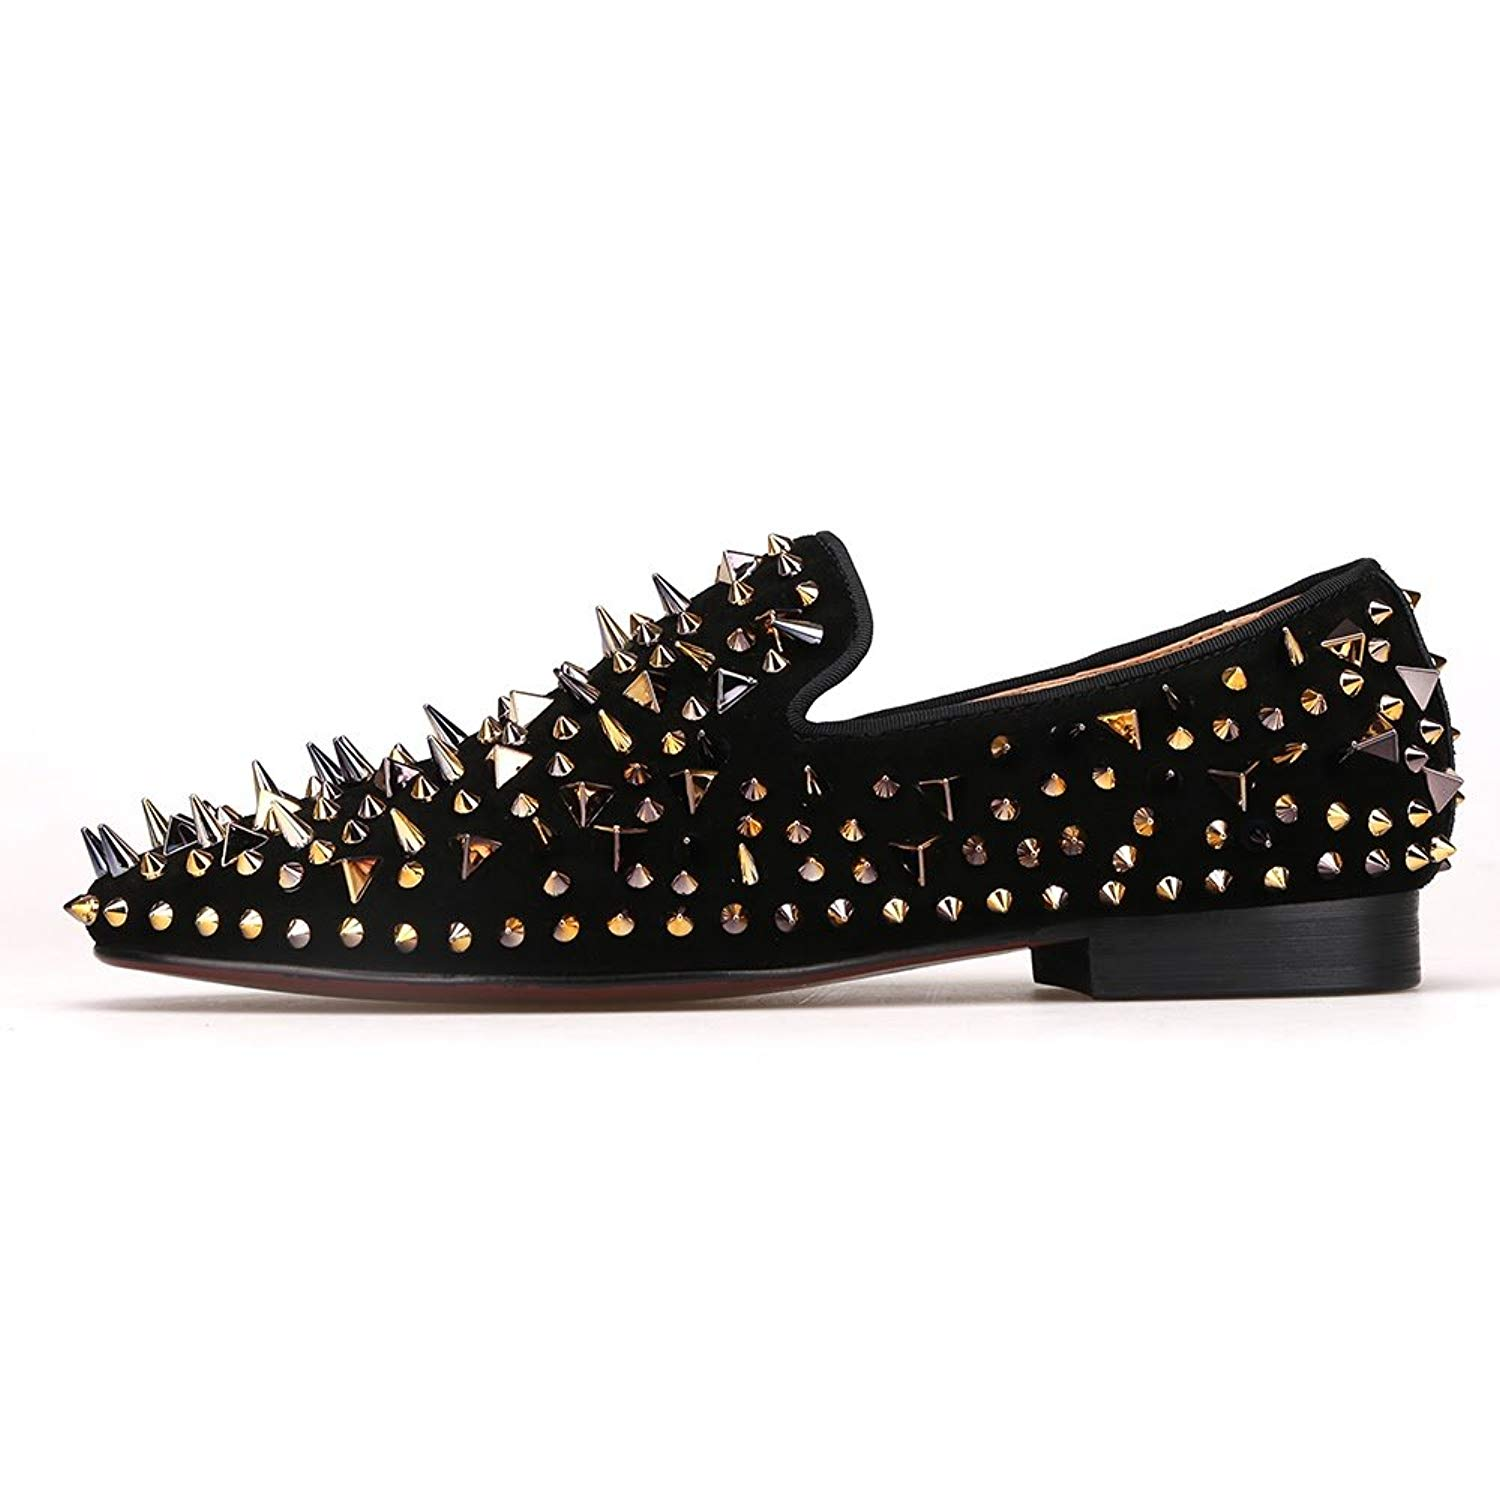 43e6e4b89f2d Get Quotations · Merlutti Black Loafers with Gold Rivet Suede Slip-on Rhinestone  Spiked Rivet Sparkly Shoes